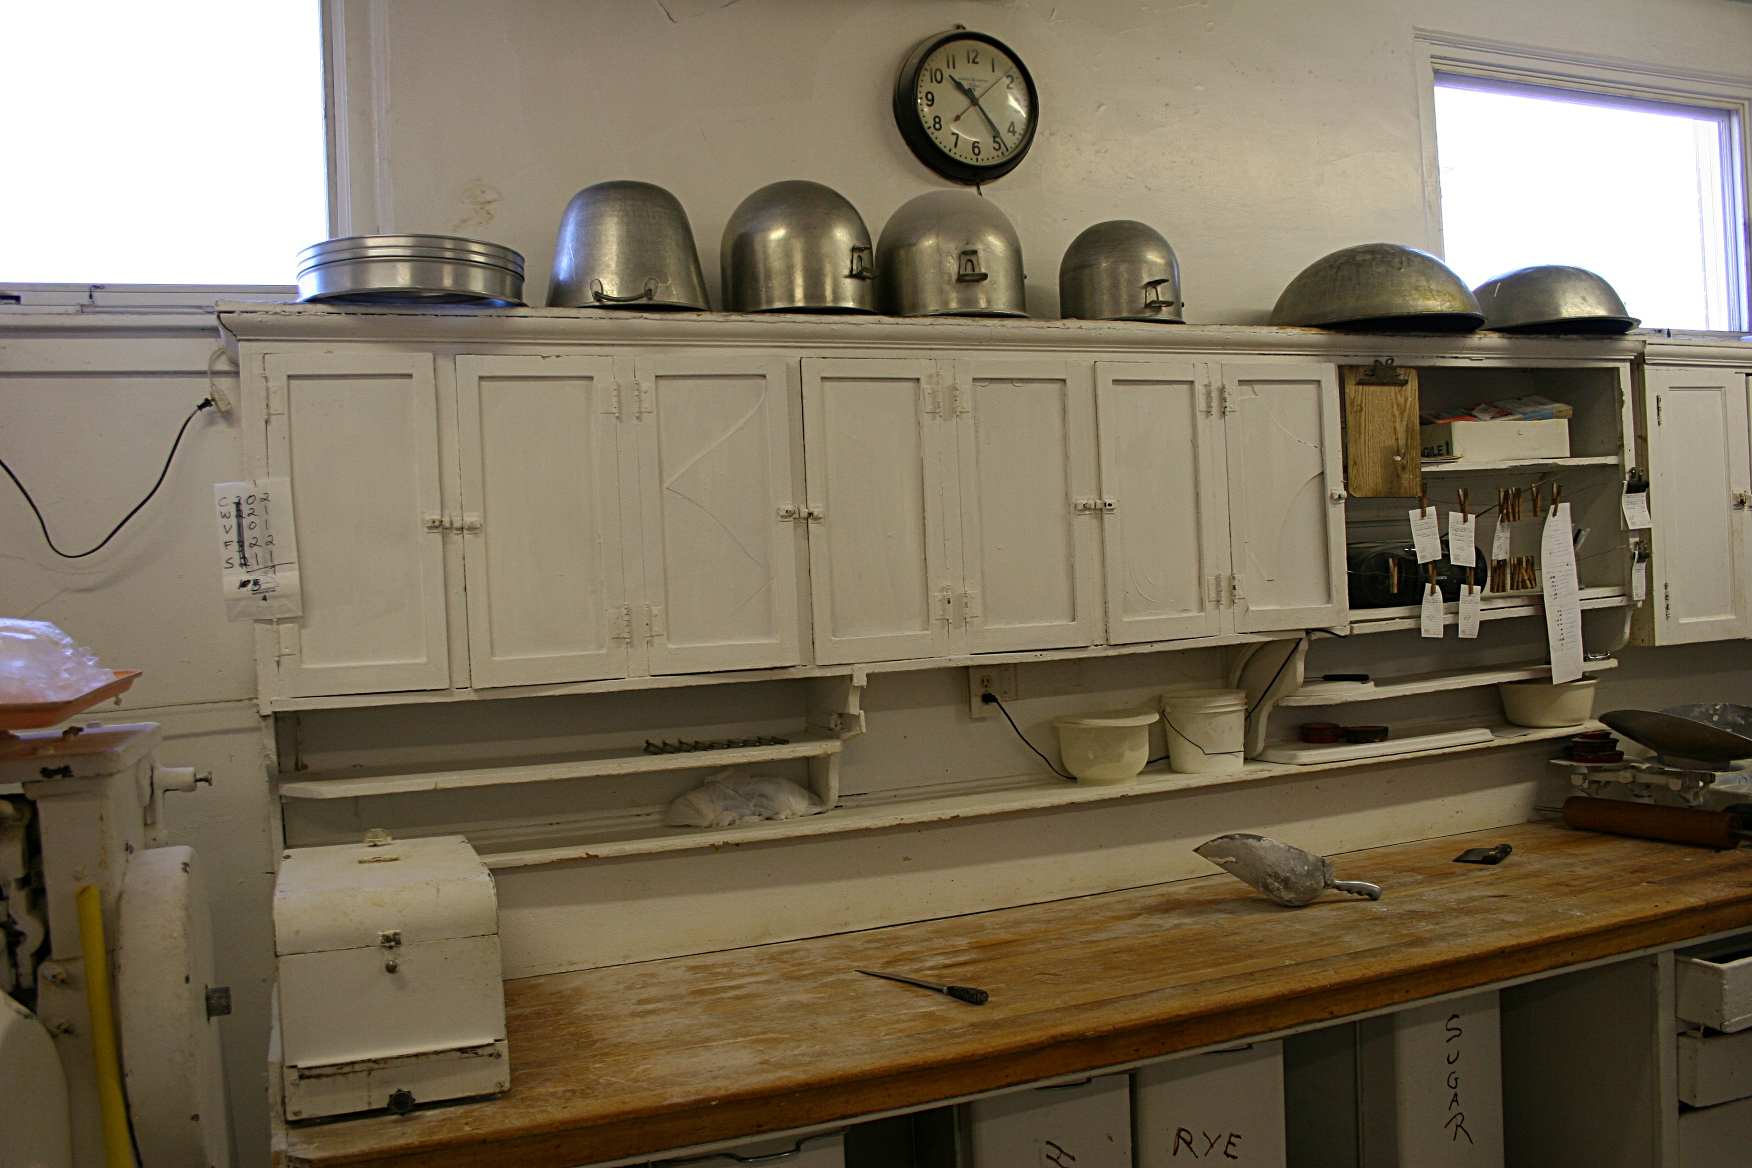 Behind the scenes in the bakery's kitchen.